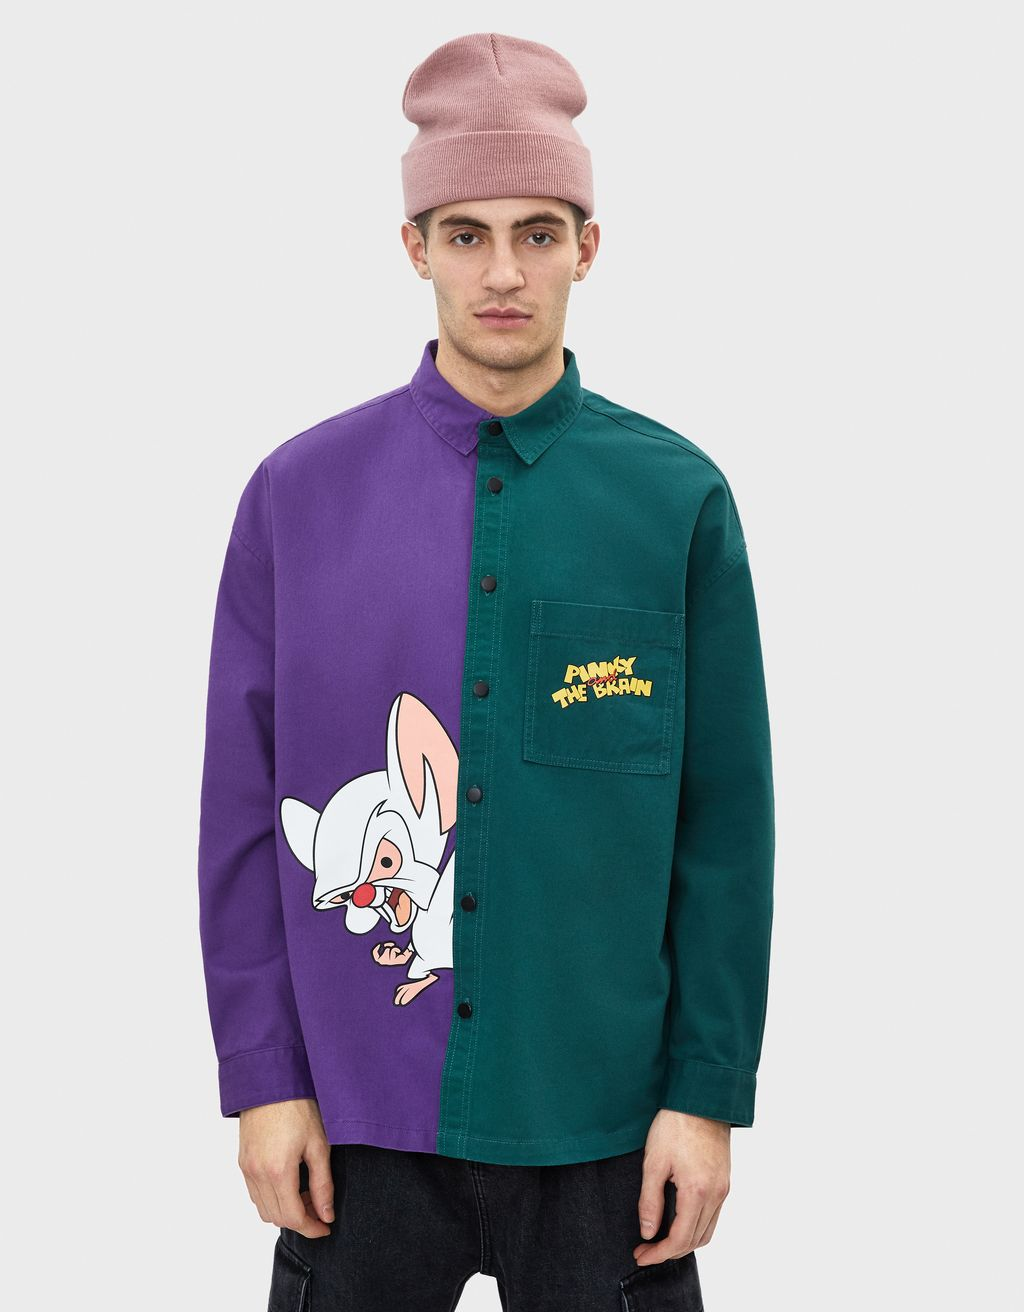 Pinky & The Brain overshirt